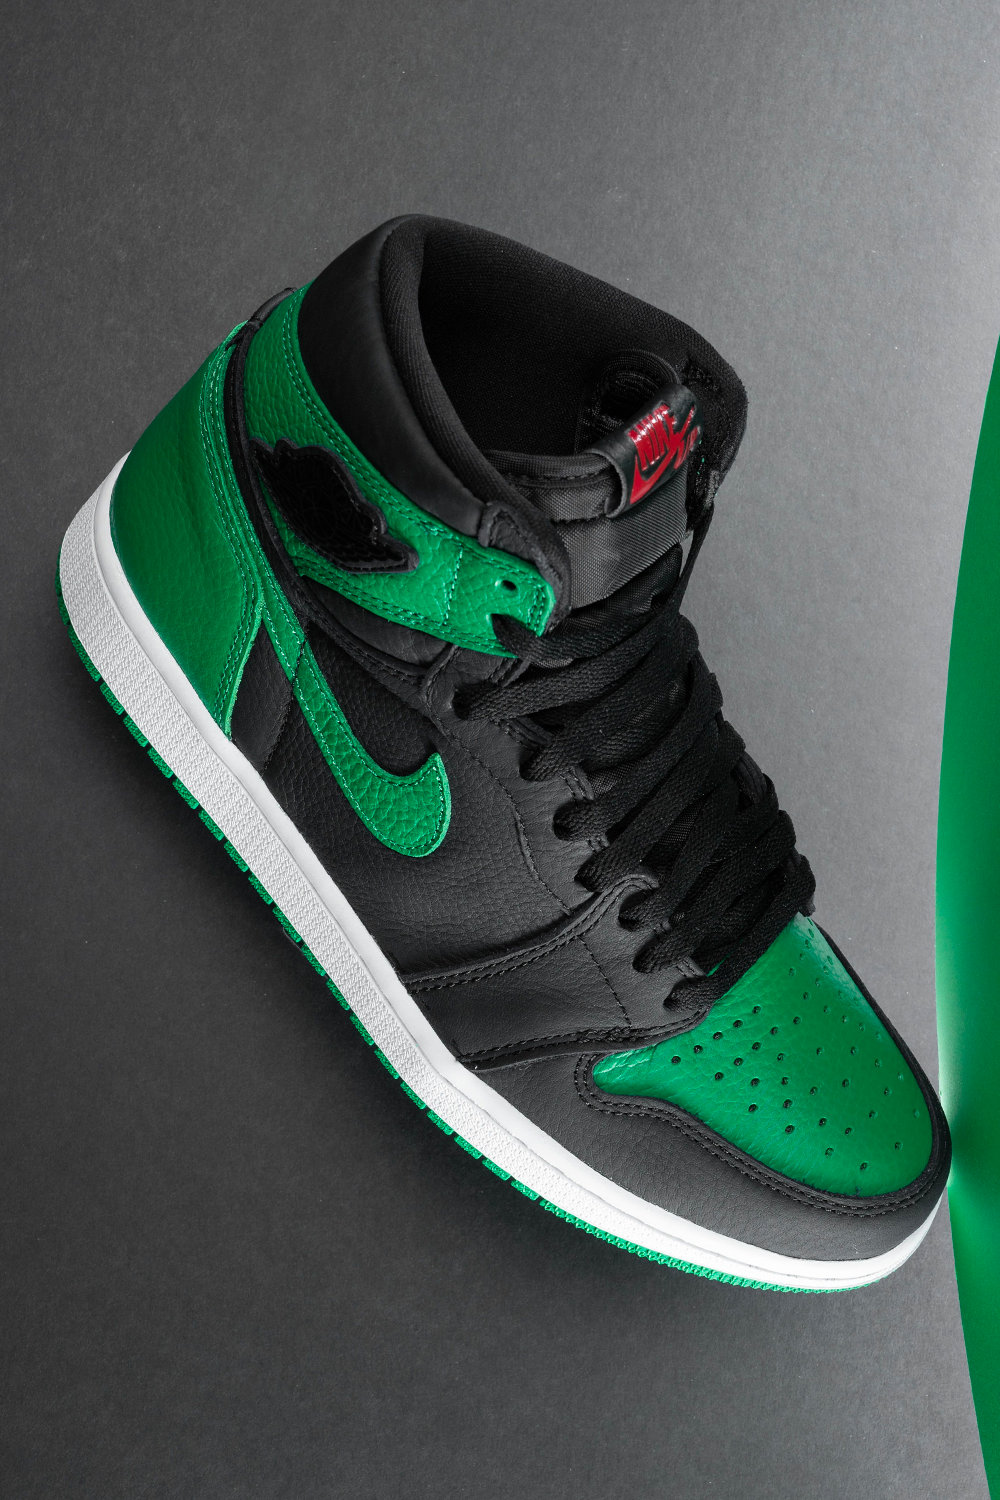 Air Jordan 1 Retro High Pine Green 2 0 555088 030 2020 In 2020 Black Nike Shoes Nike Air Shoes Hype Shoes